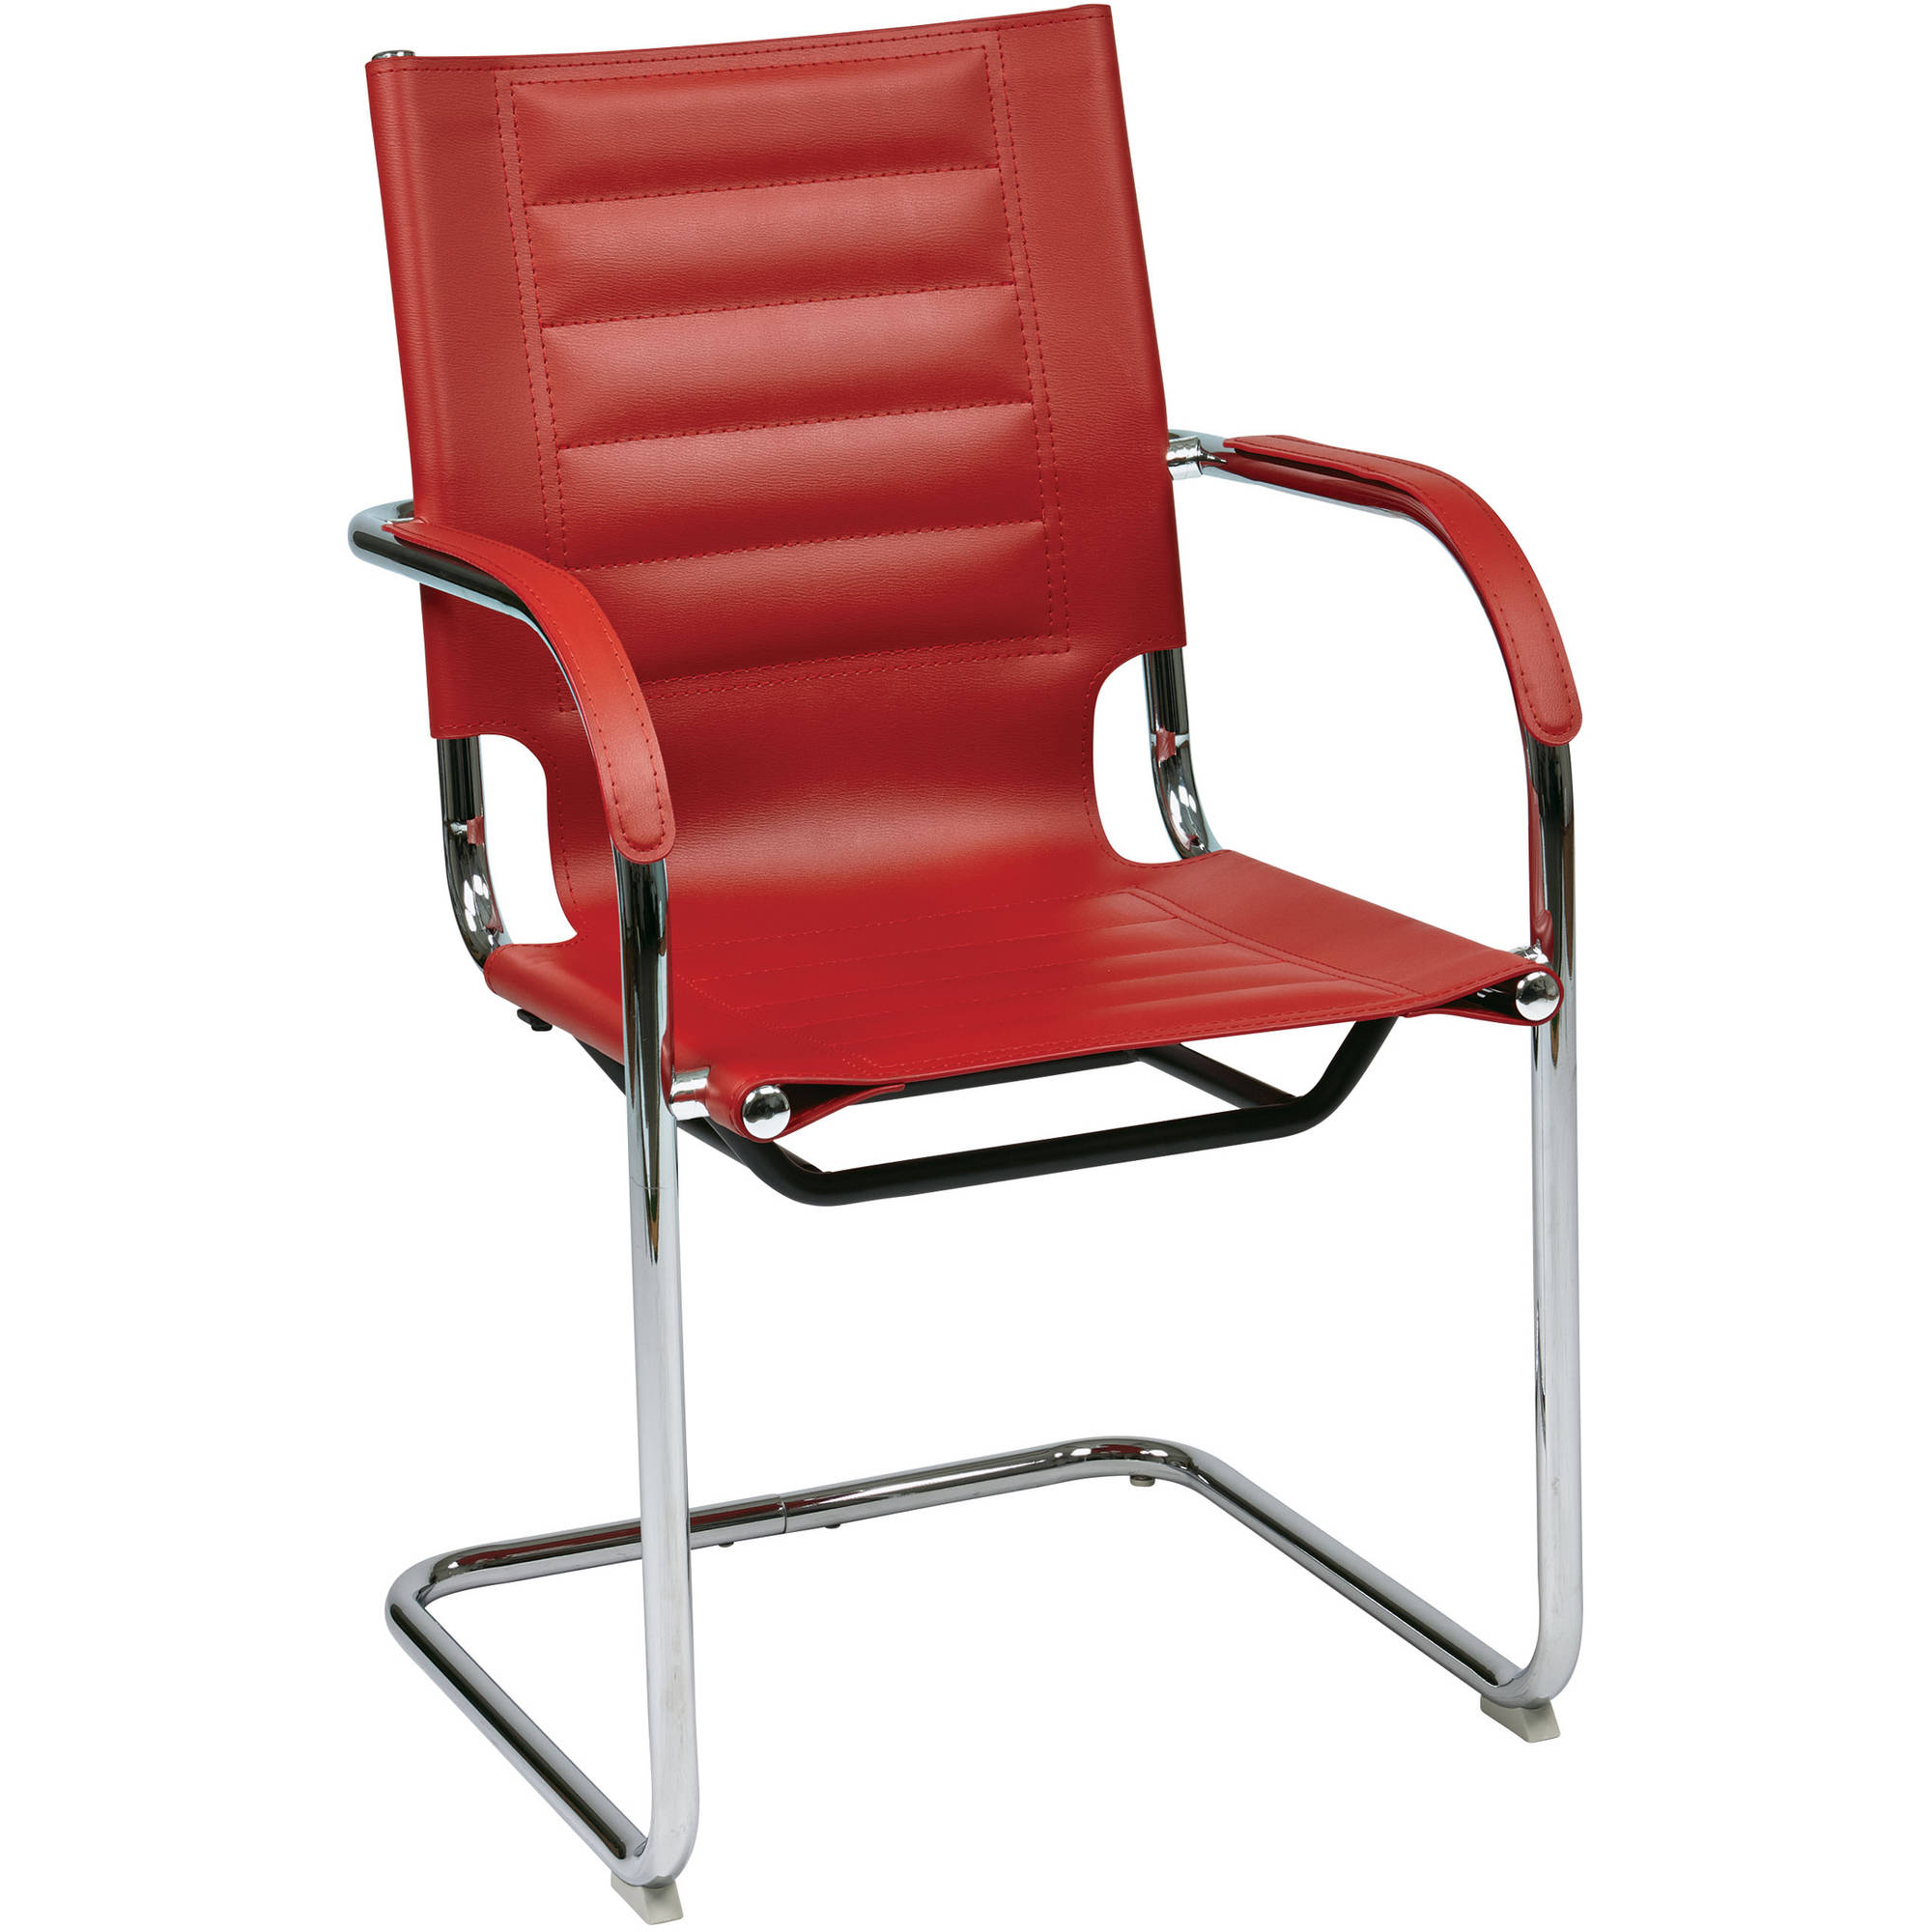 Work Smart Trinidad Guest Chair in Red Vinyl, Red